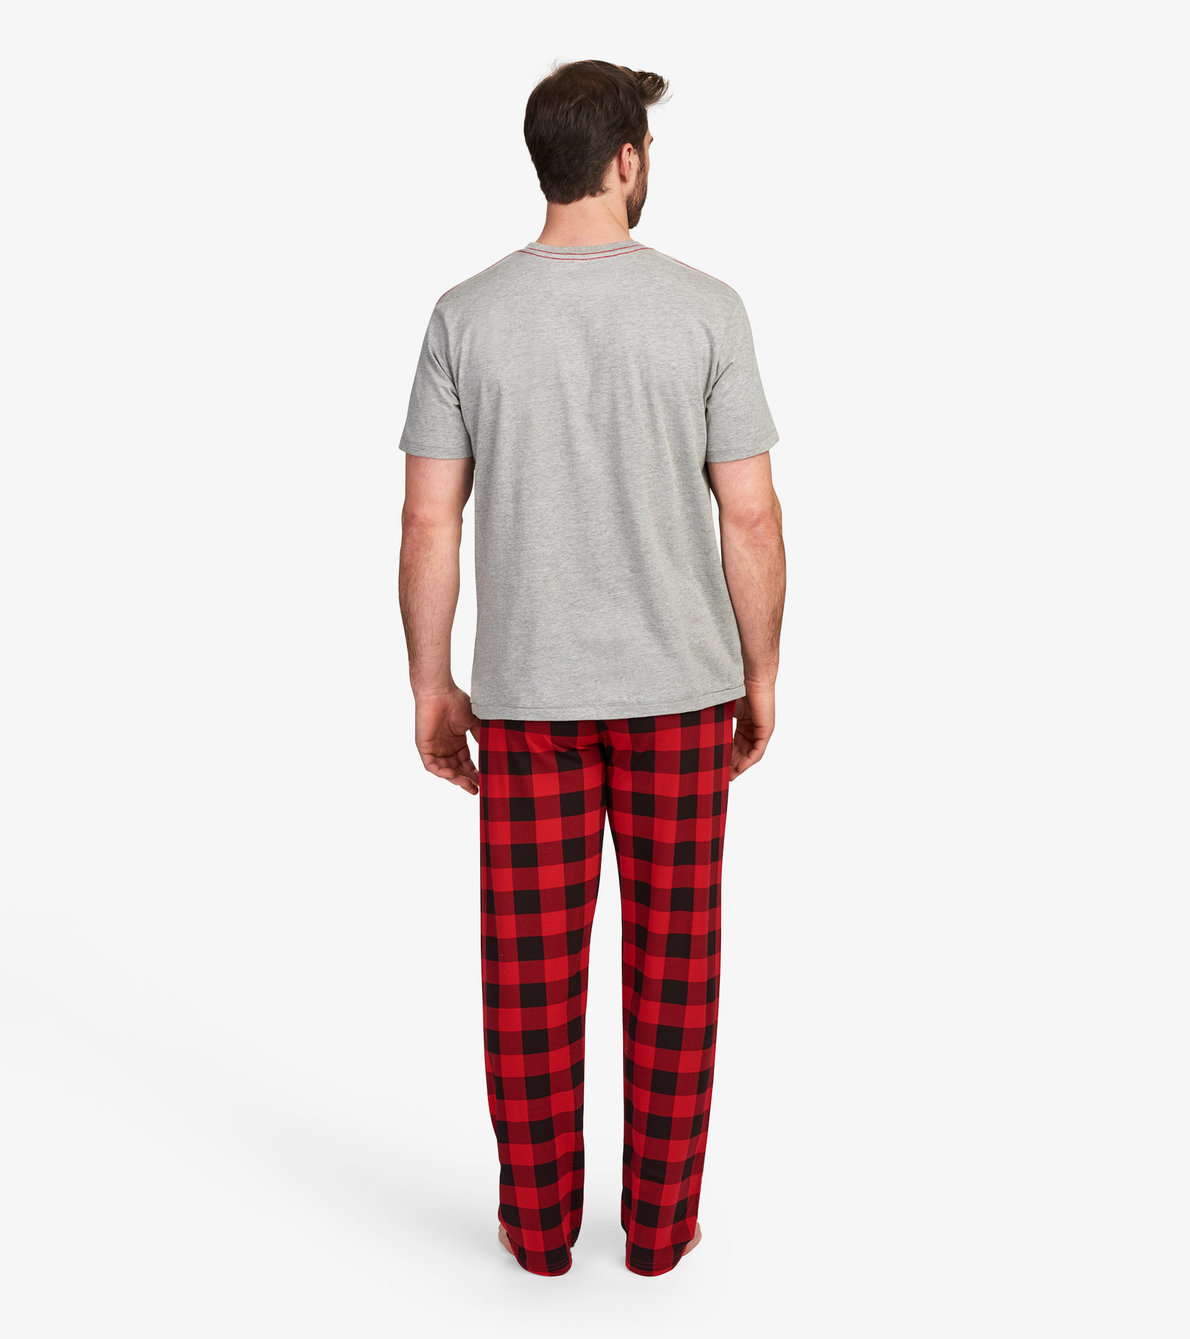 View larger image of Wild Side Men's Tee and Pants Pajama Separates